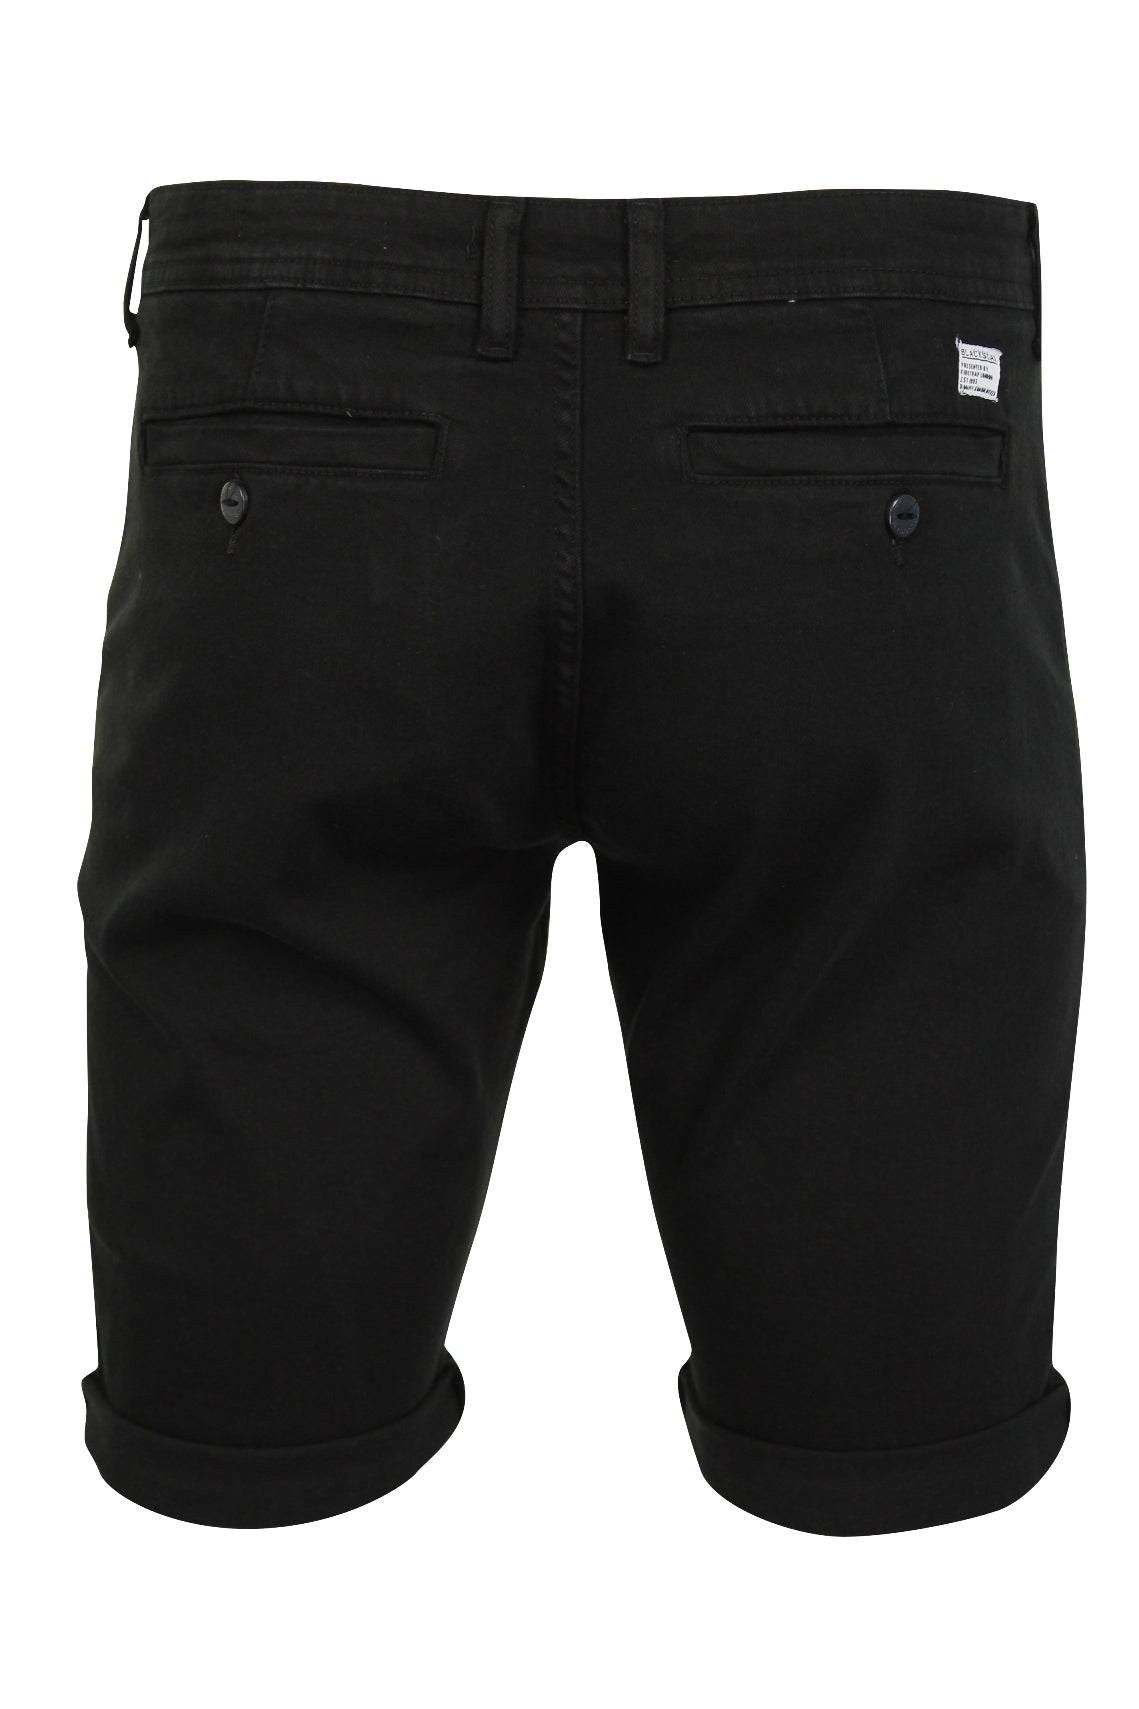 Mens Chino Shorts by Firetrap 'Solvay' Cotton Twill-2